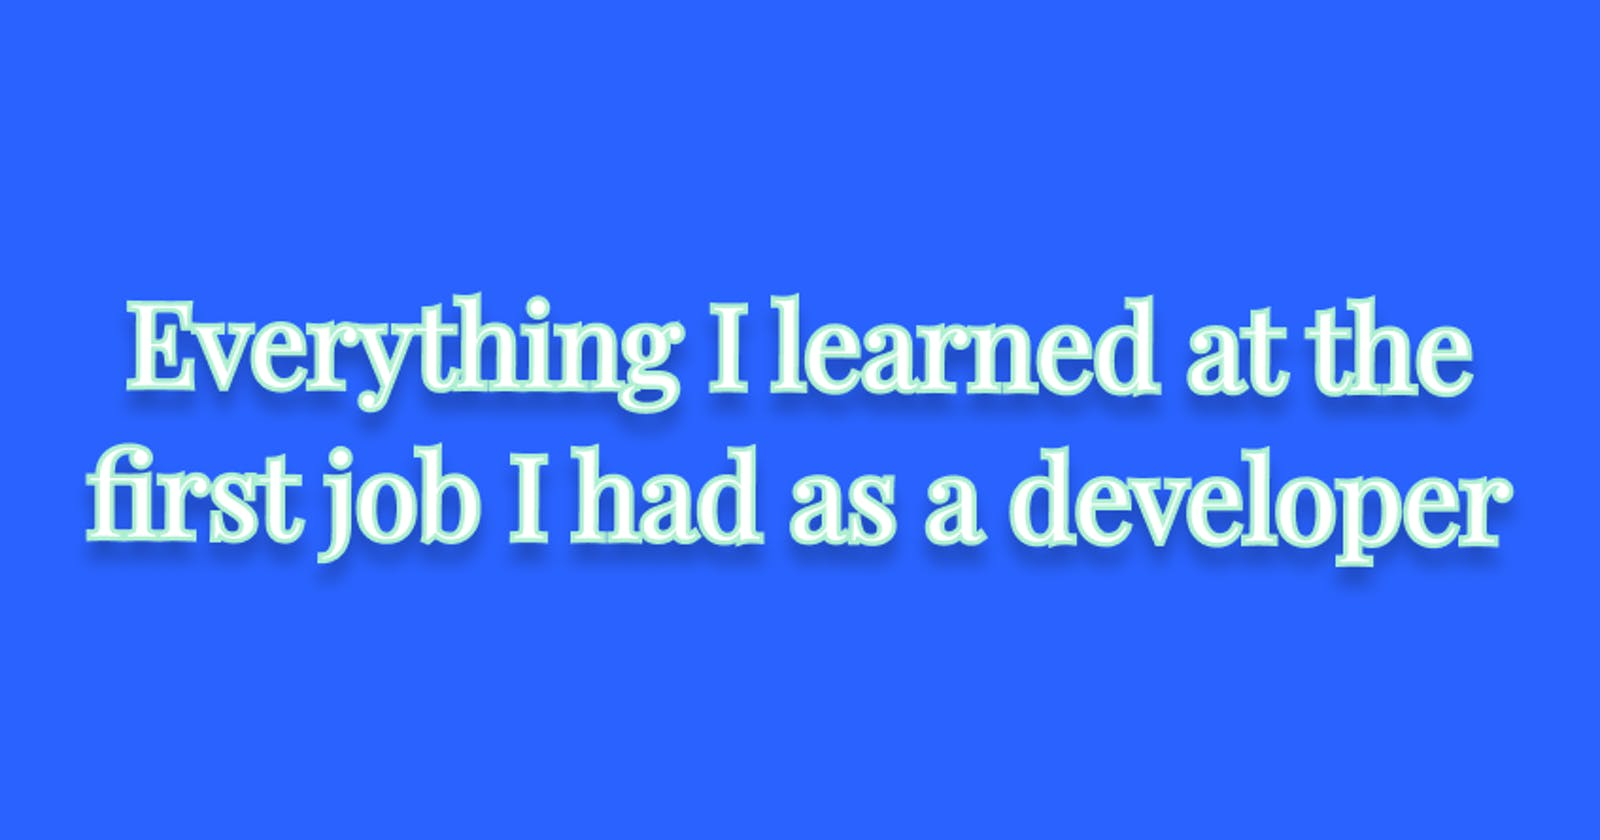 Everything I learned at the first job I had as a developer